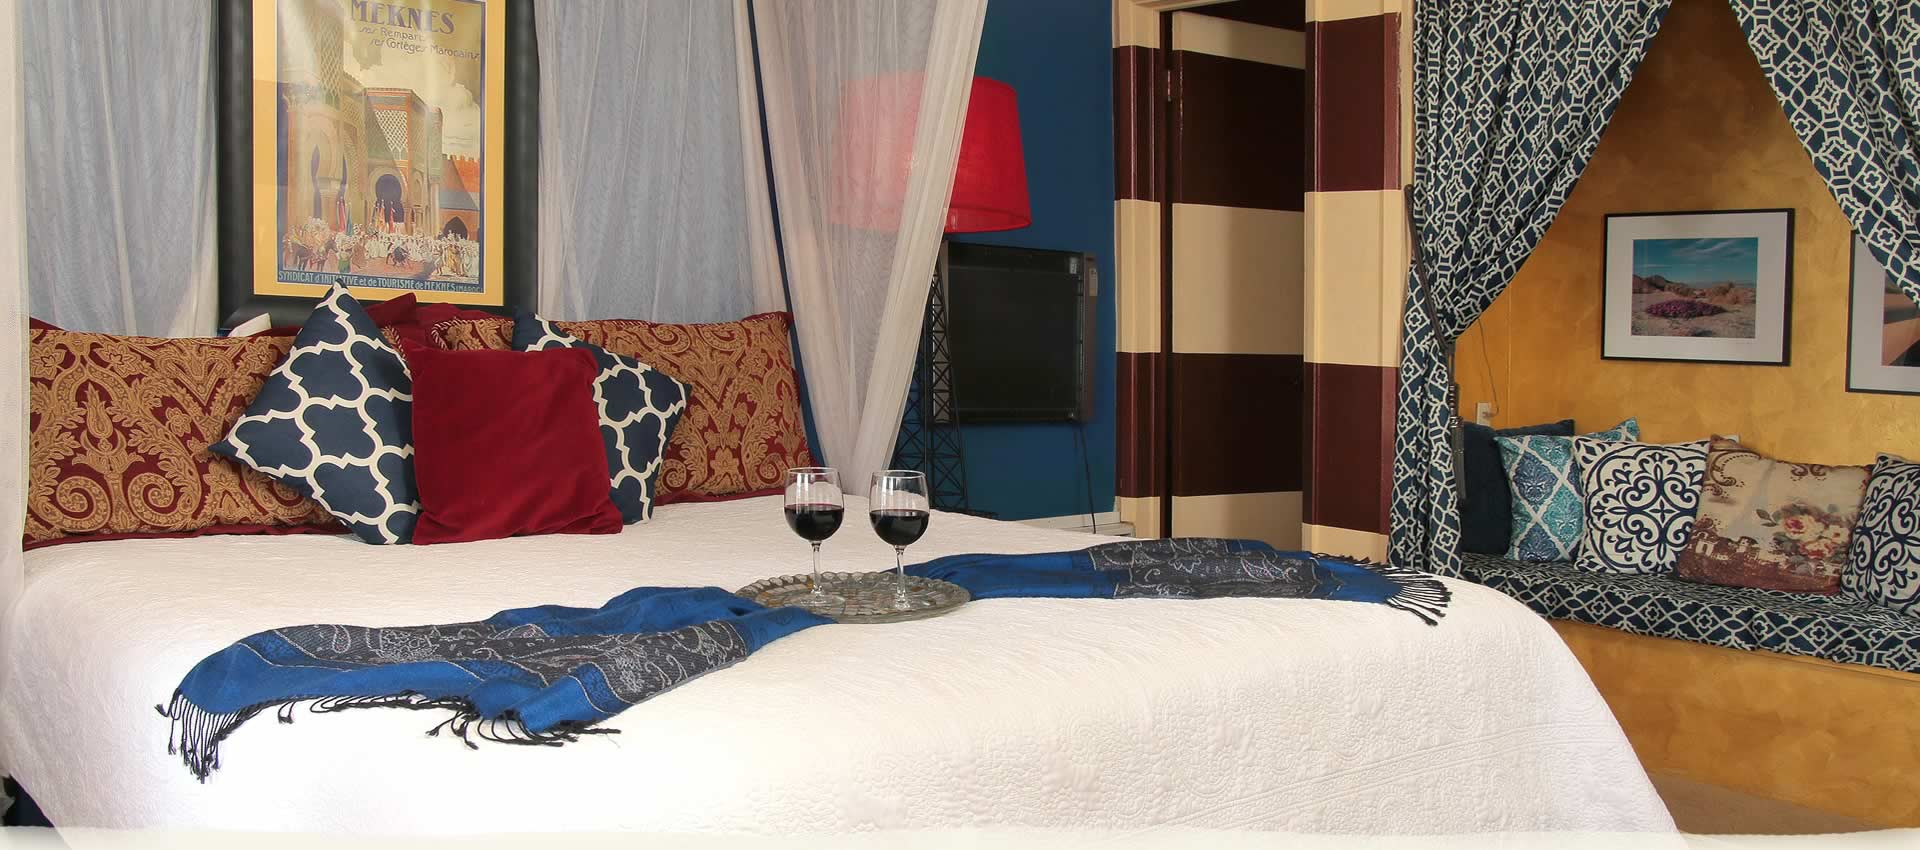 Standard King Room Bed with wine glasses